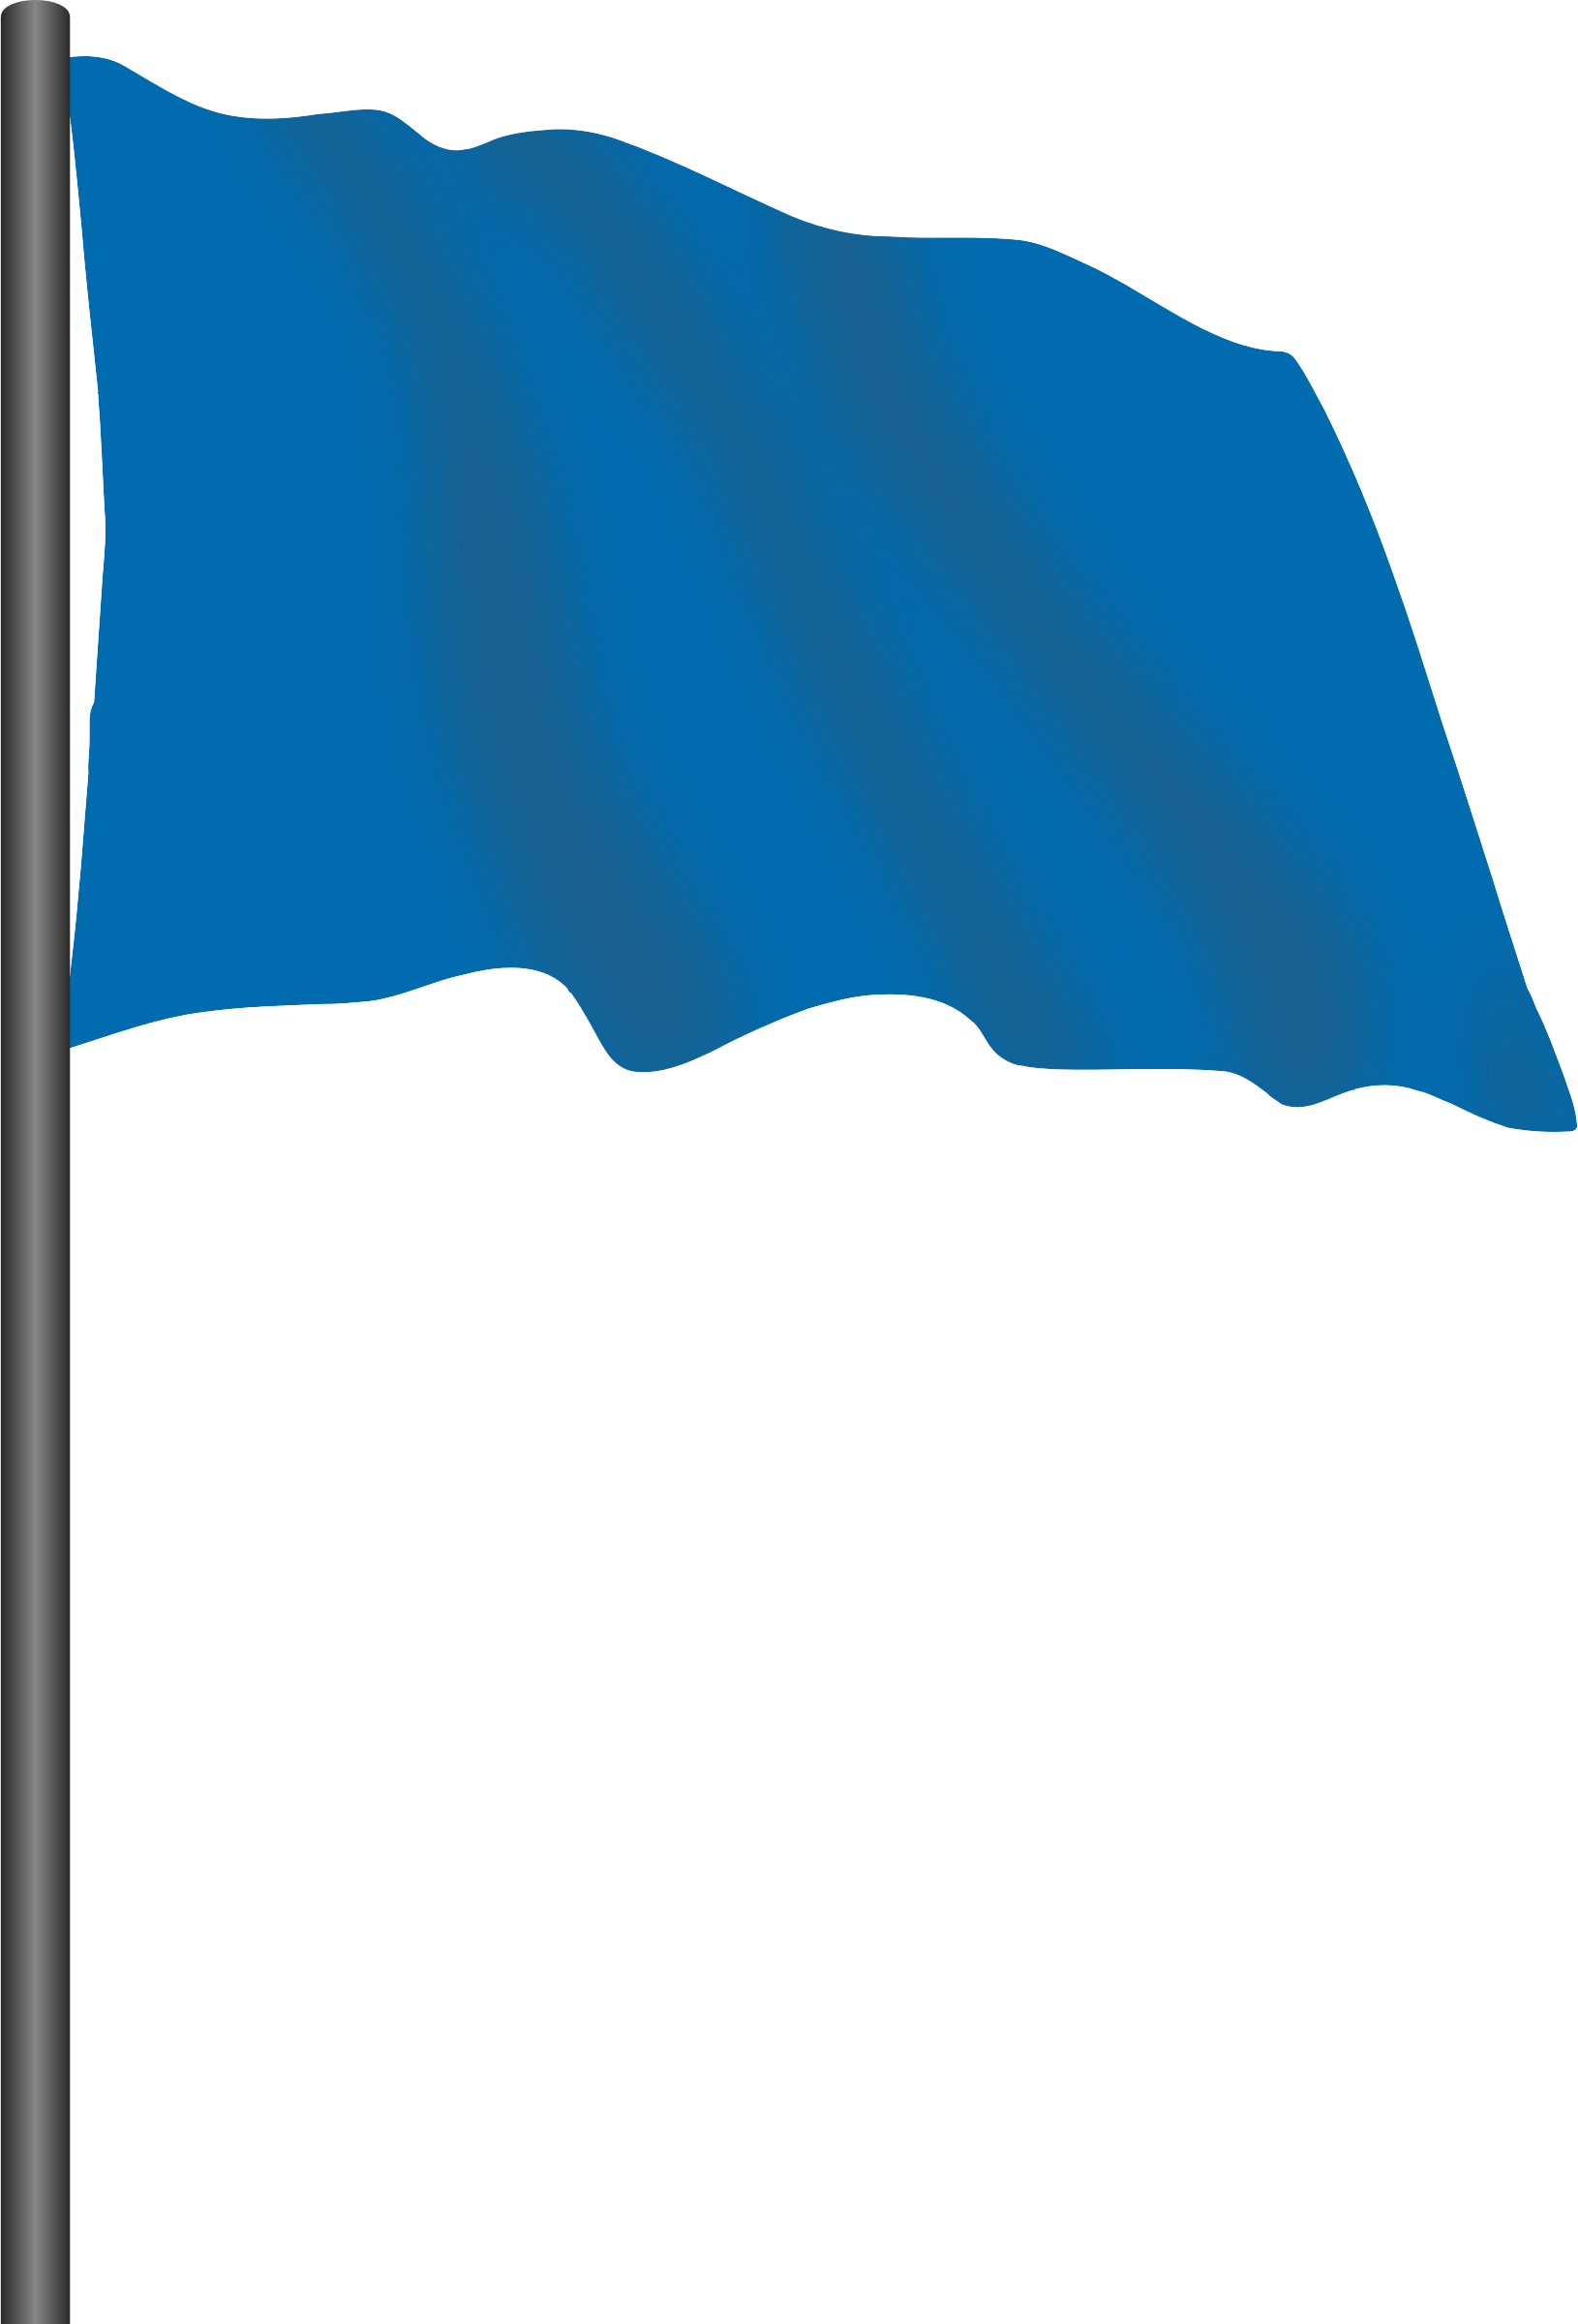 Motor racing flag 6 - blue flag by Firkin